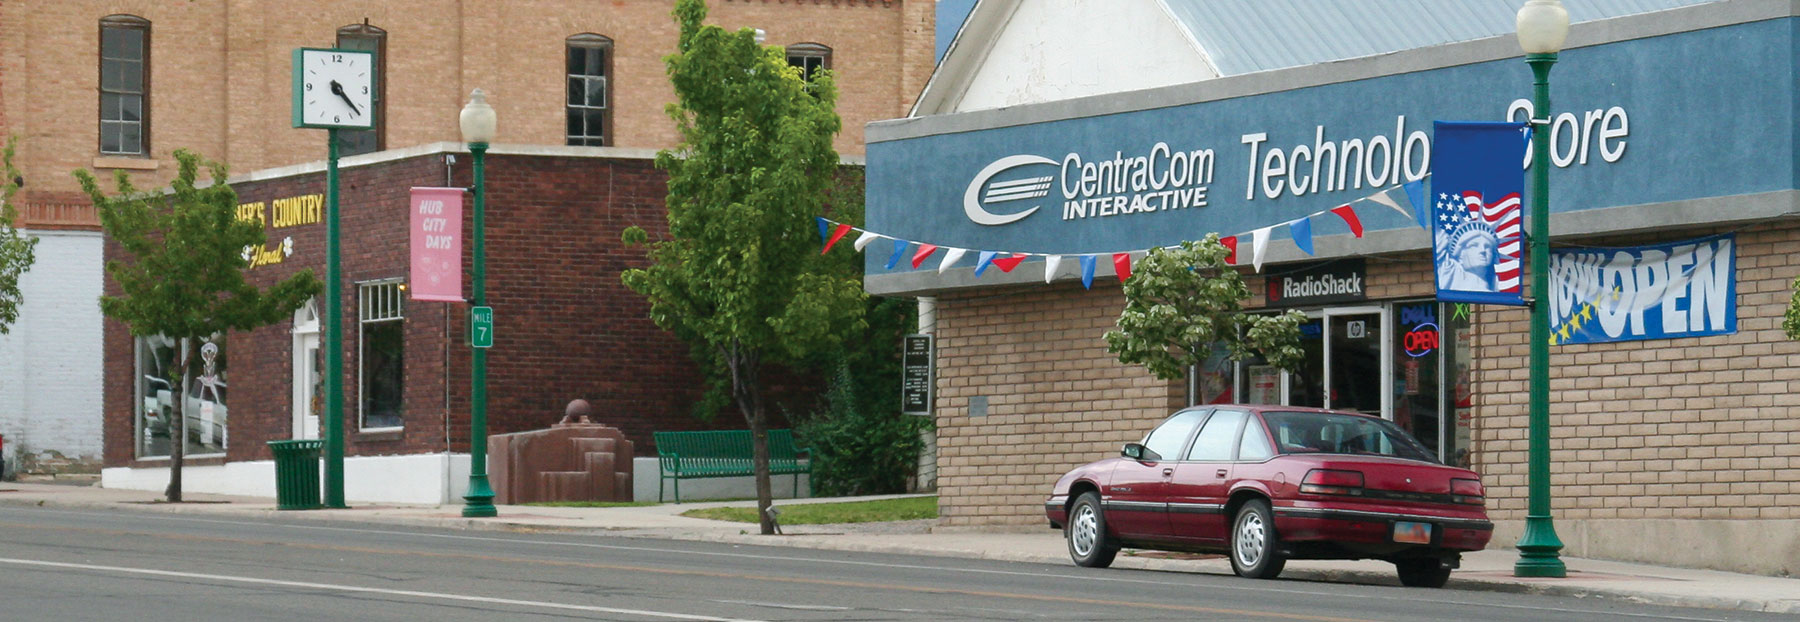 CentraCom Technology Store